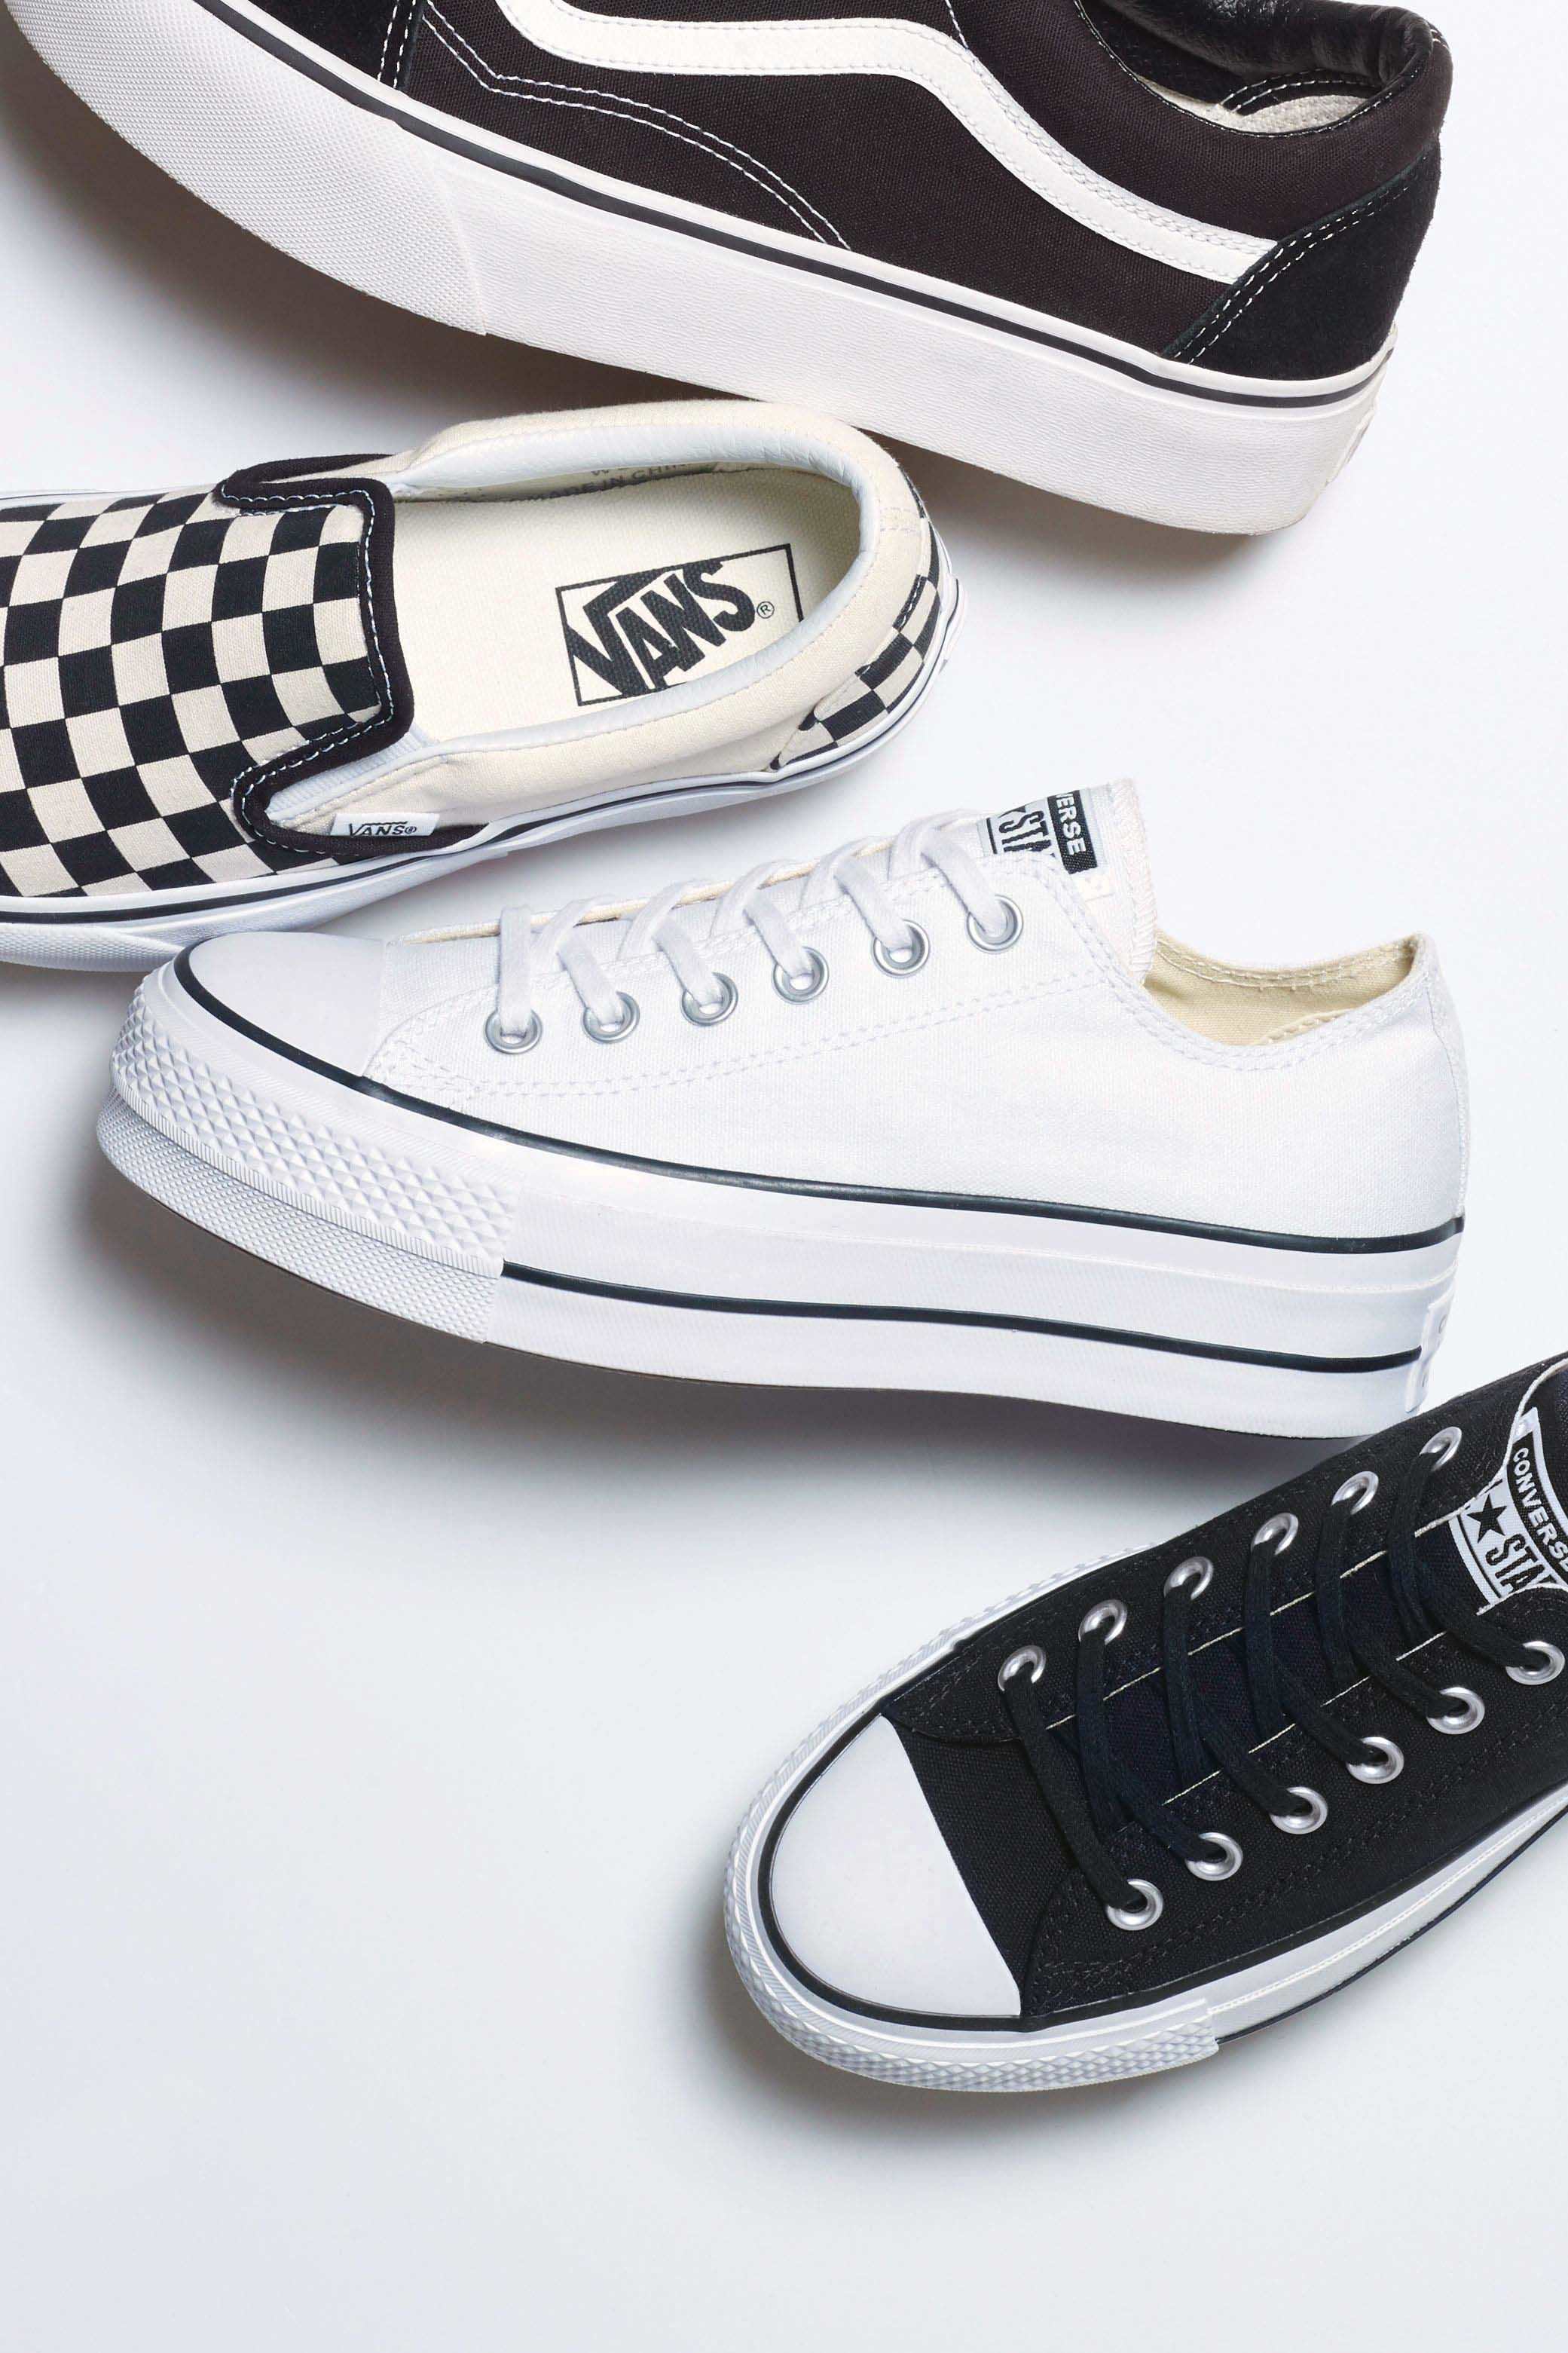 Offer Special of Converse Shoes Online Shop | Perfect Basic